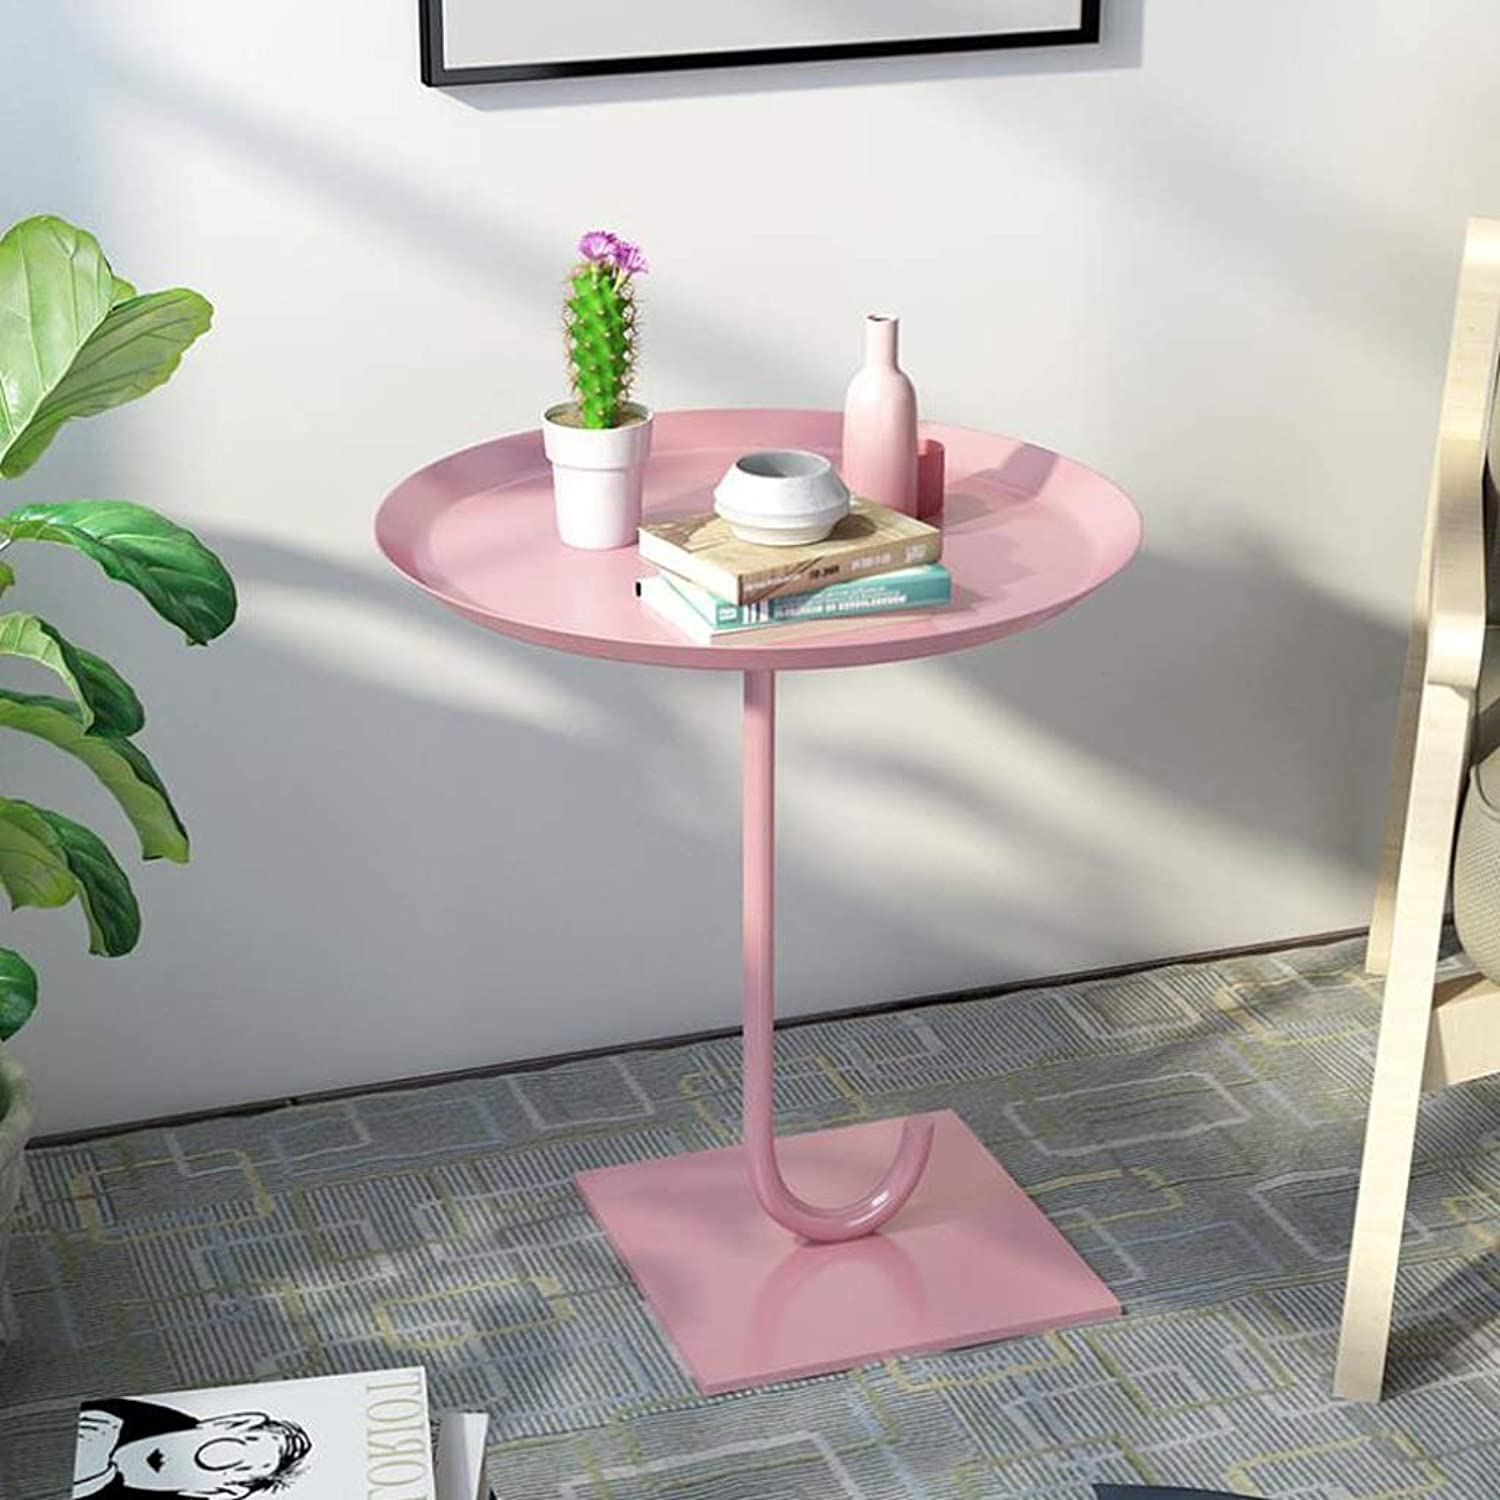 LYN Sofa Side End Table, Wrought Iron Umbrella Casual Negotiation Coffee Table Living Room Sofa Side Round Multi-Function (color   Pink, Size   37cm)